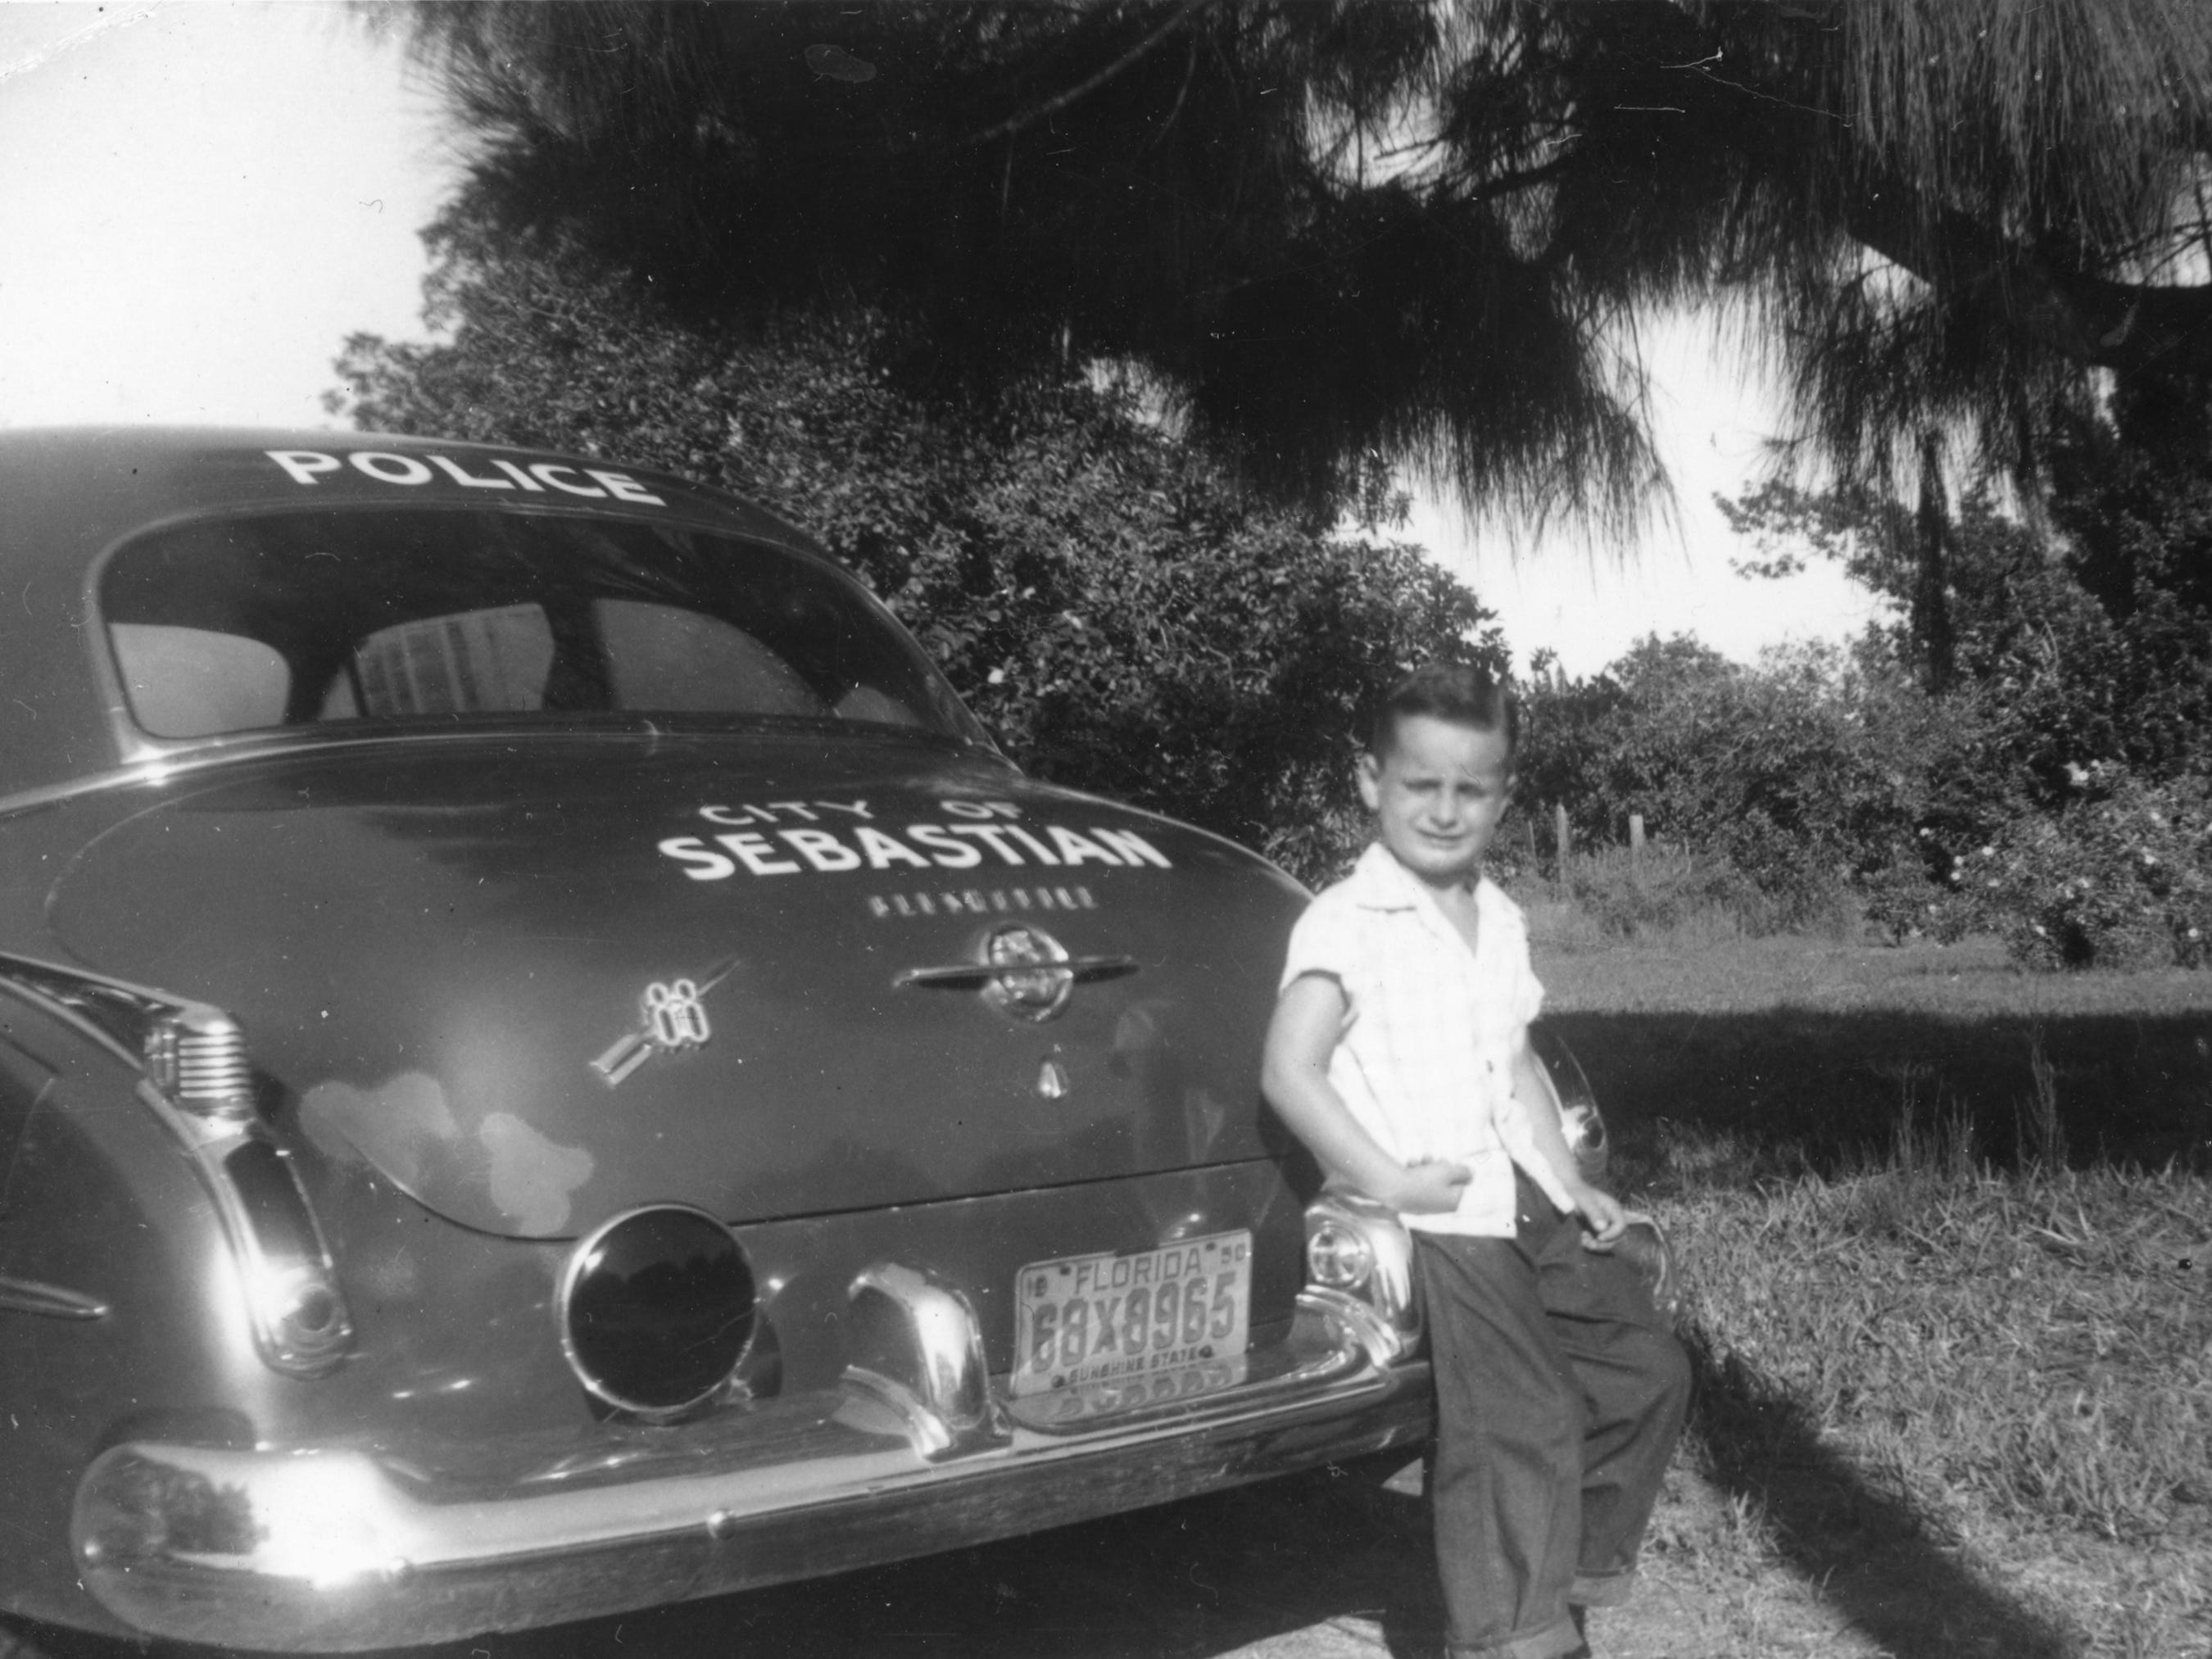 Stanley Loncon Jr. sitting on his father's patrol car in Sebastian, early 1950s. His father, Stanley Loncon Sr., was the chief of police in Sebastian at that time.